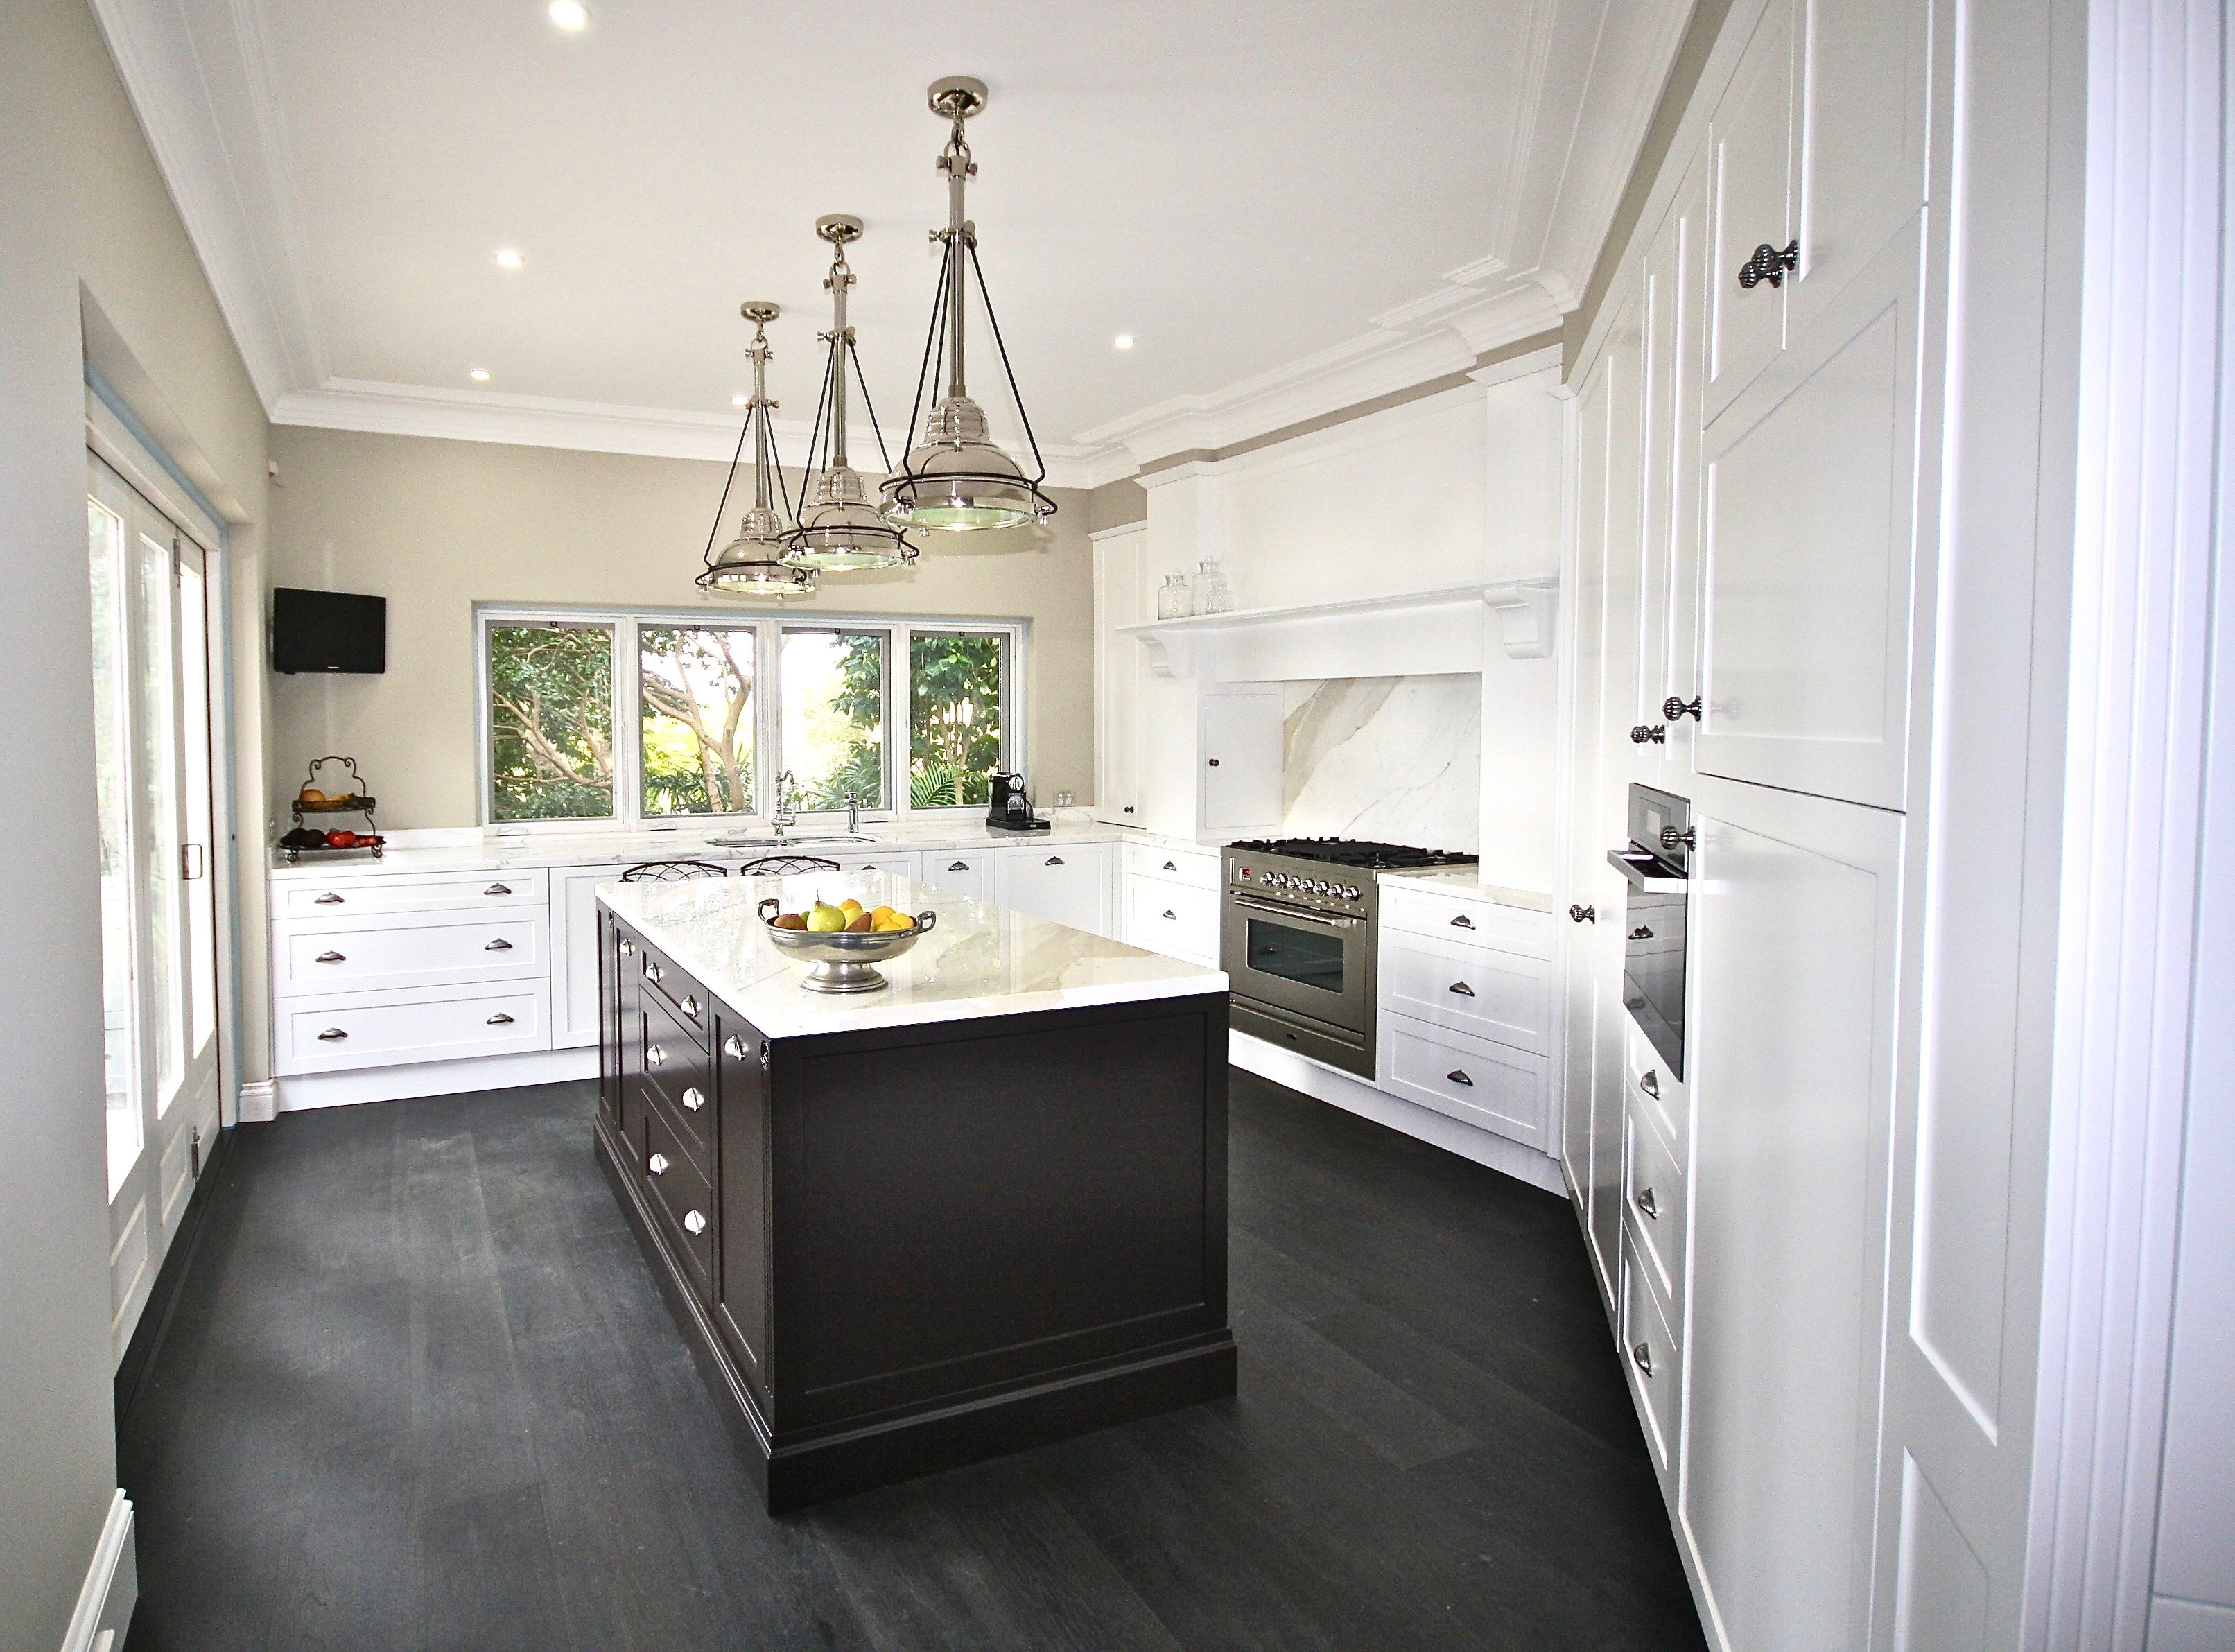 12 best TWO TONE KITCHENS - KITCHEN IDEAS images on Pinterest ...